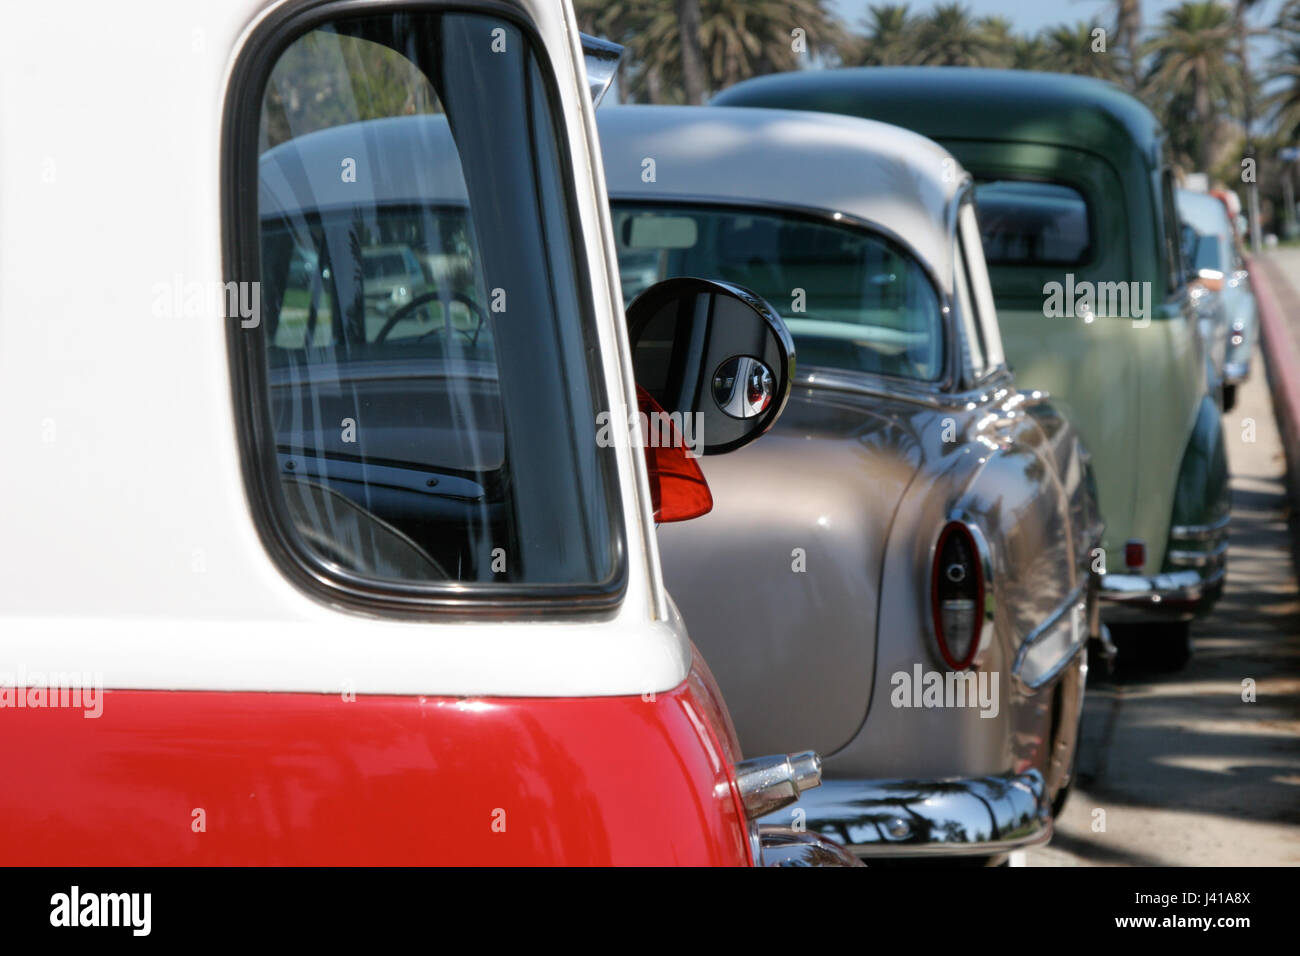 Vintage cars parked along a California street Stock Photo, Royalty ...